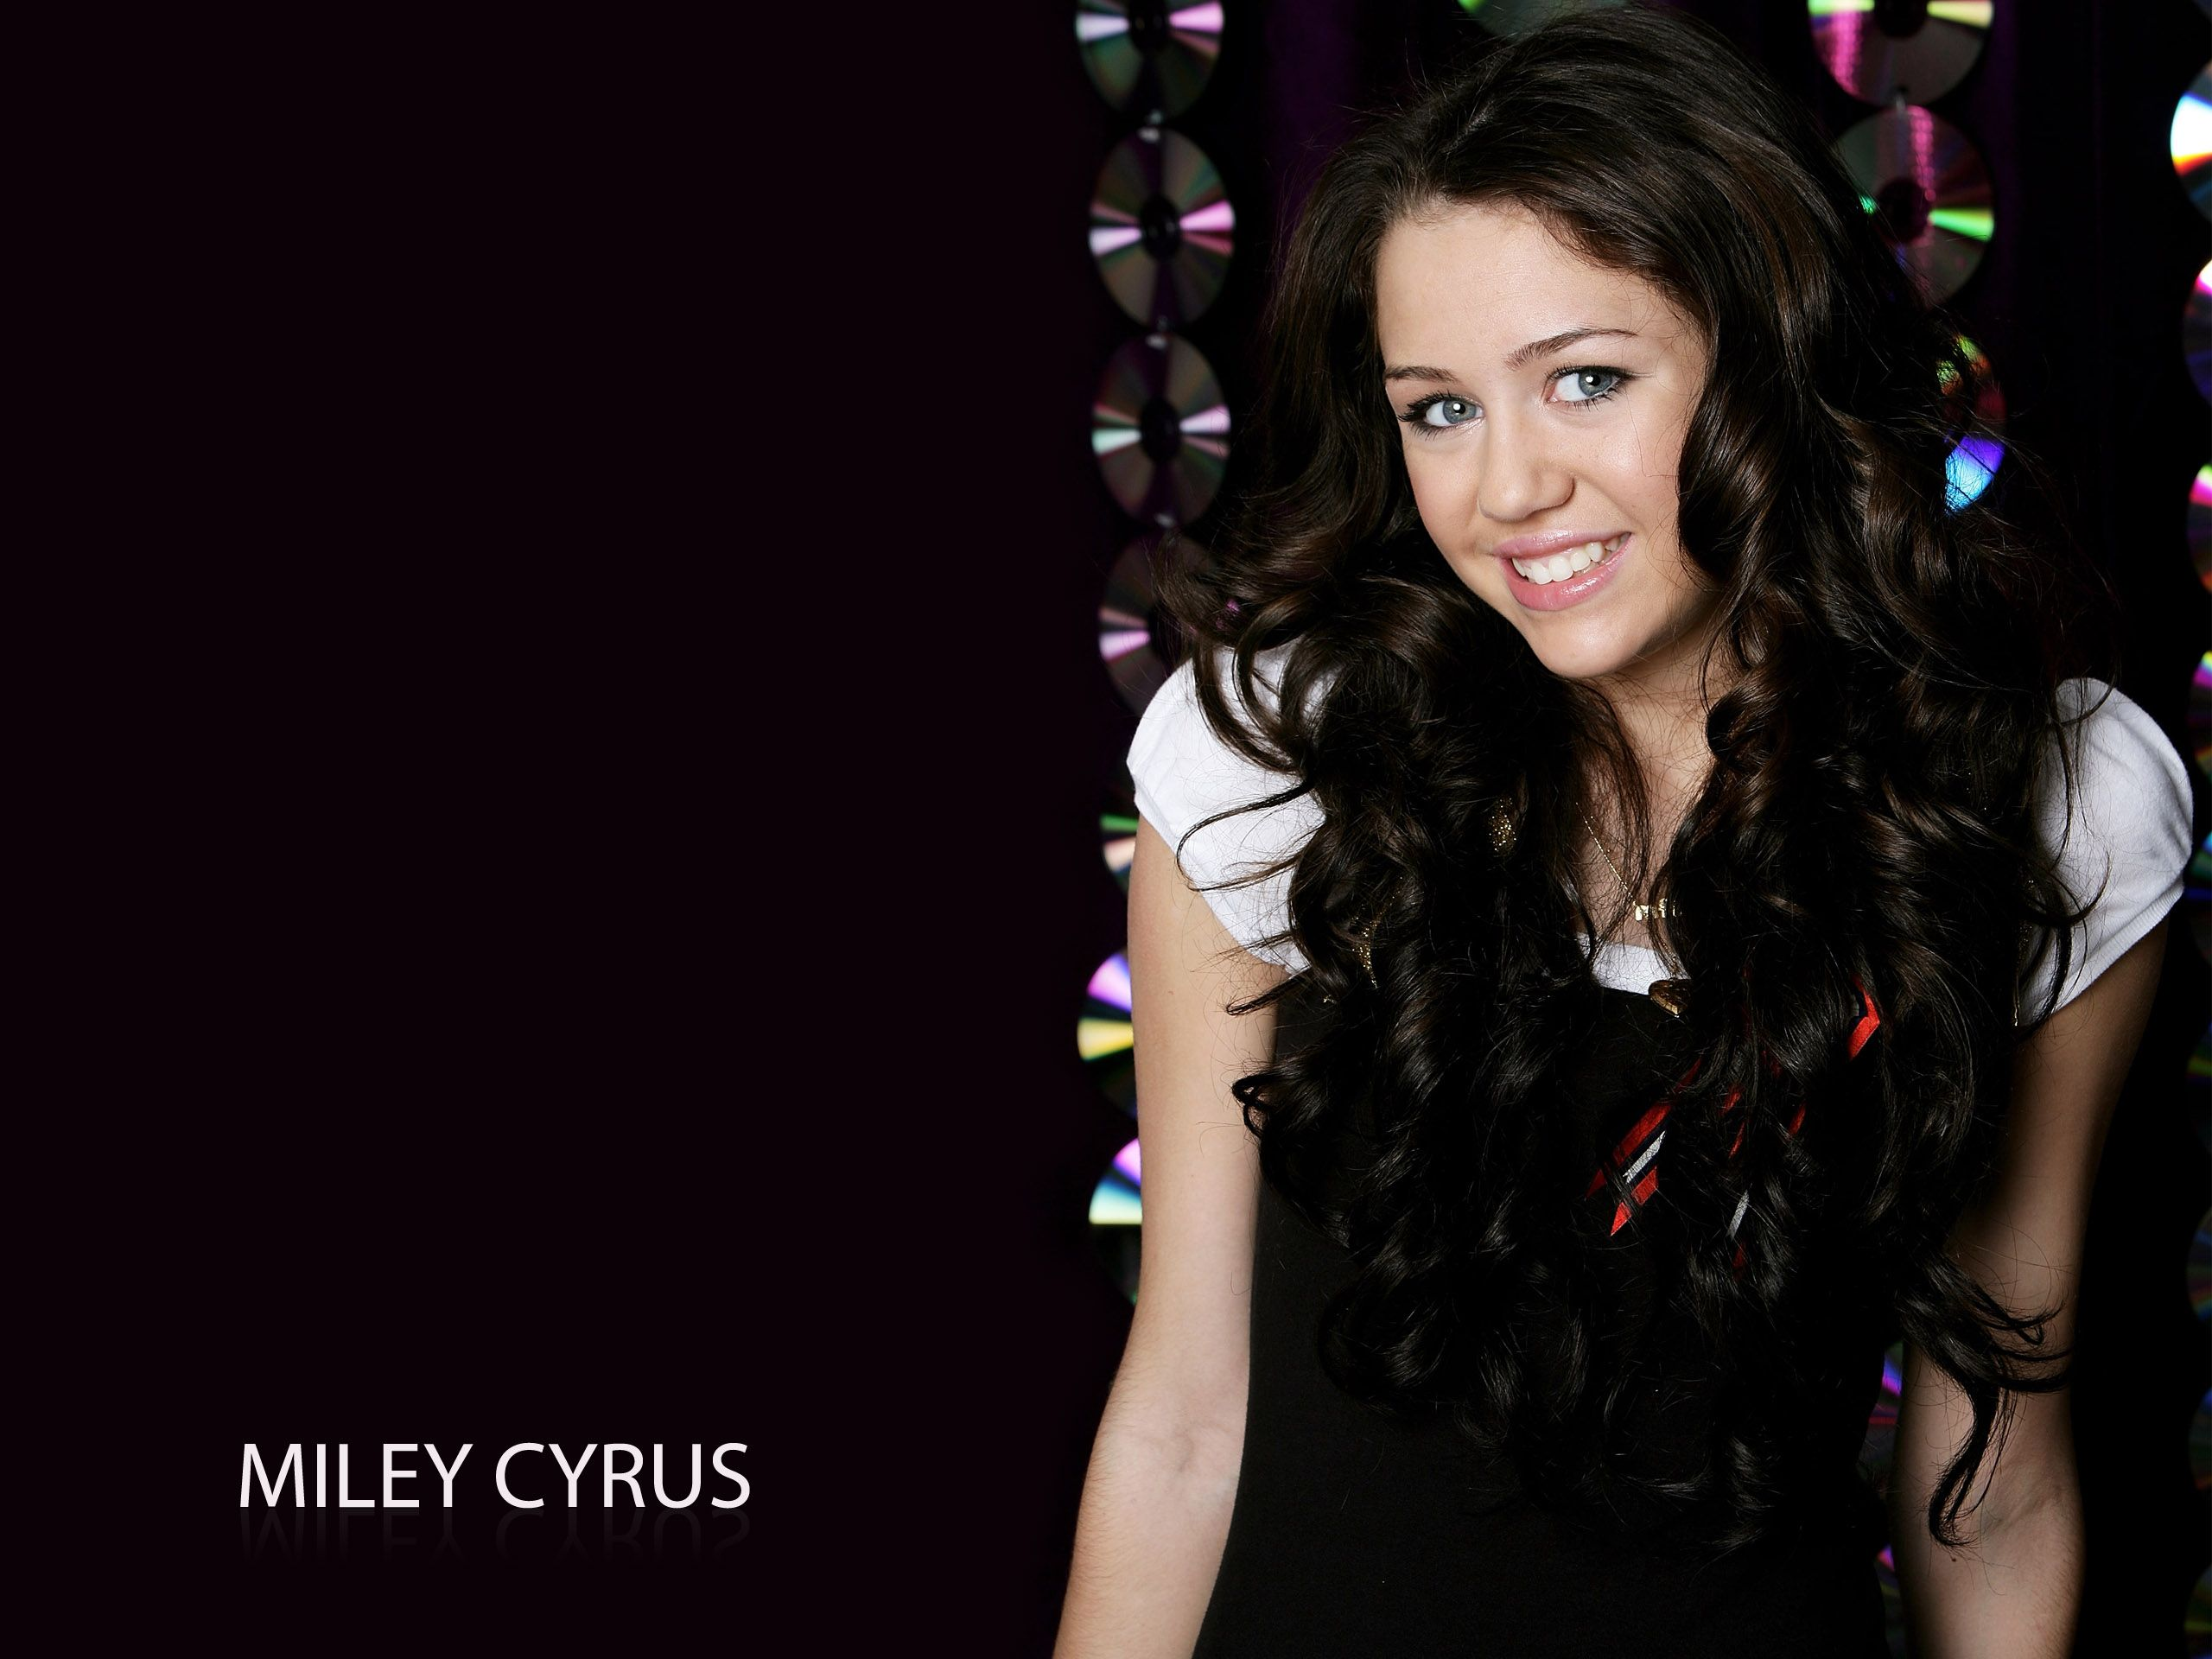 Gallery For Miley Cyrus Wallpapers x px